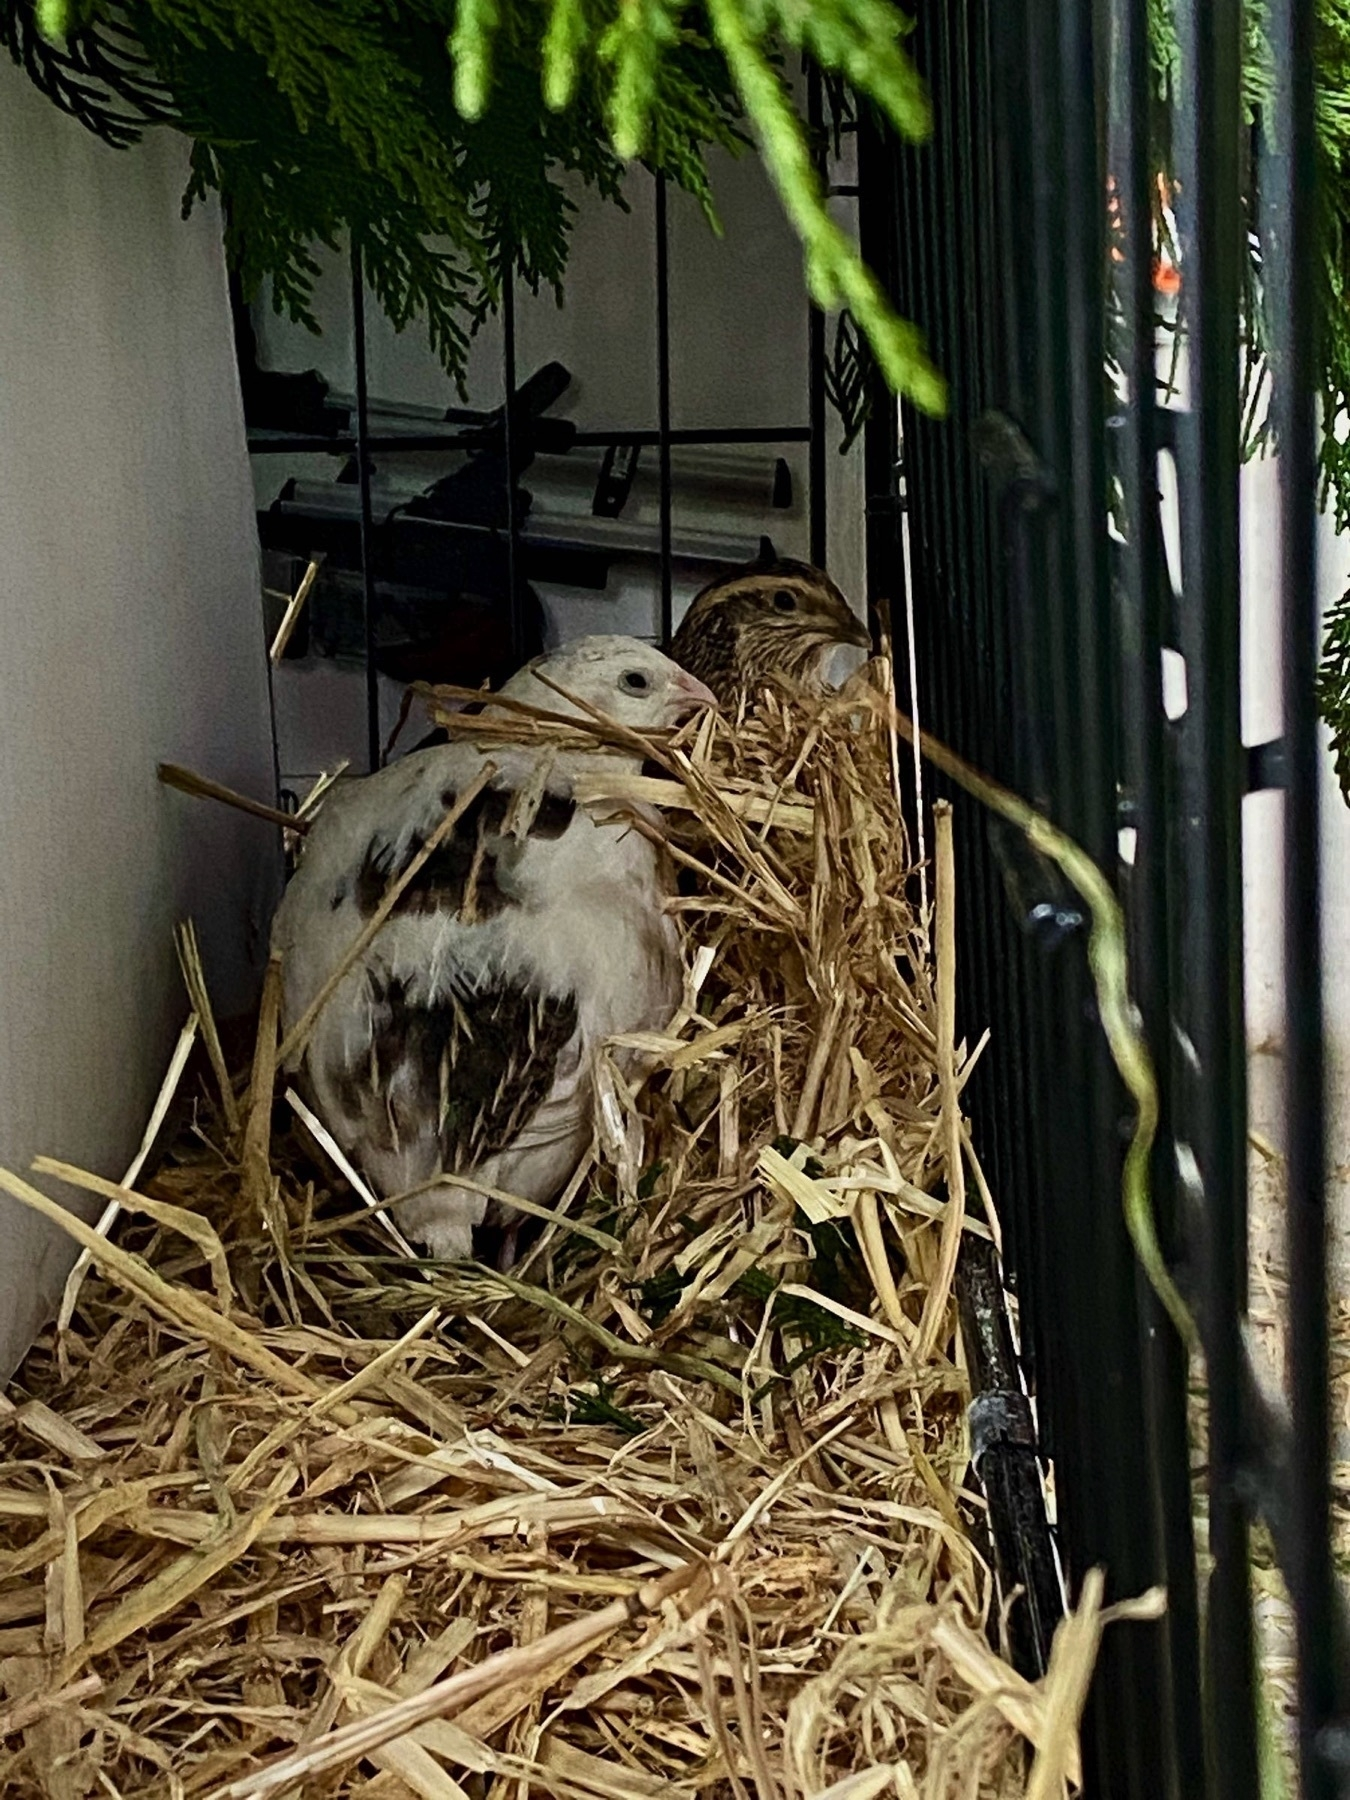 Two quail nestled in straw under overhanging macrocarpa greenery, in the dog crate.